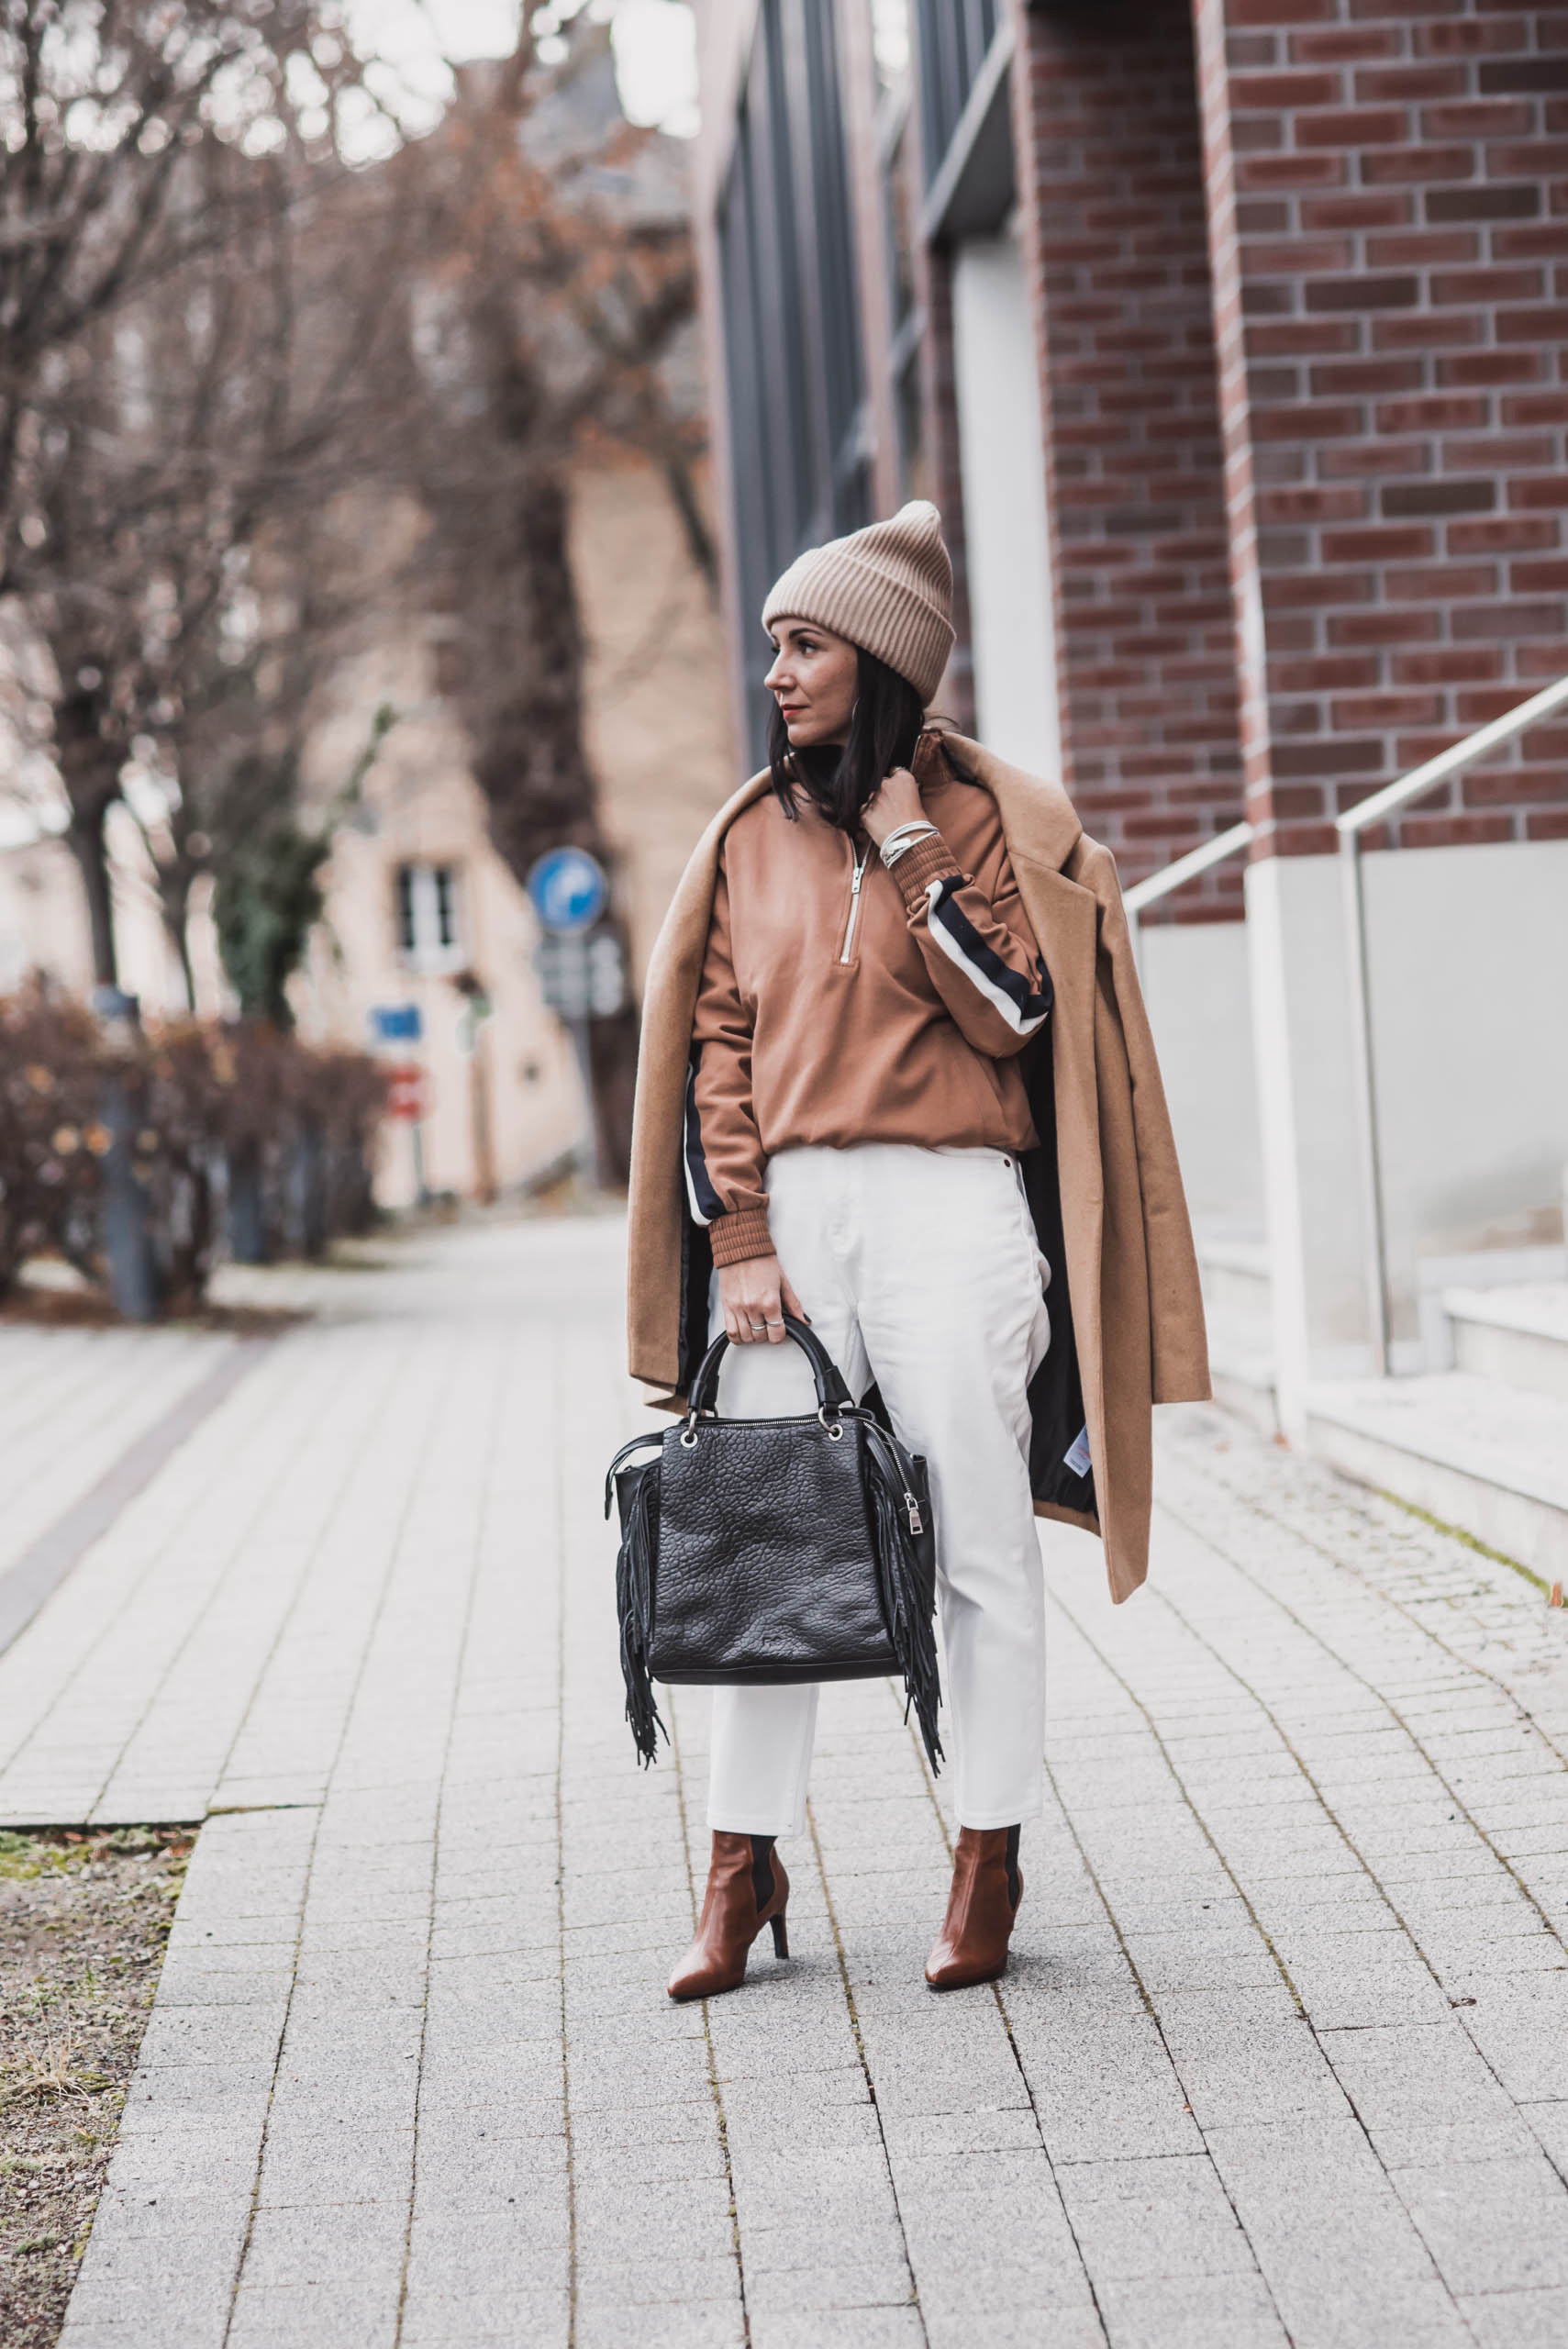 Winter Looks kombinieren : Camel, Weiß & Schwarz Julies Dresscode Fashion & Lifestyle Blog